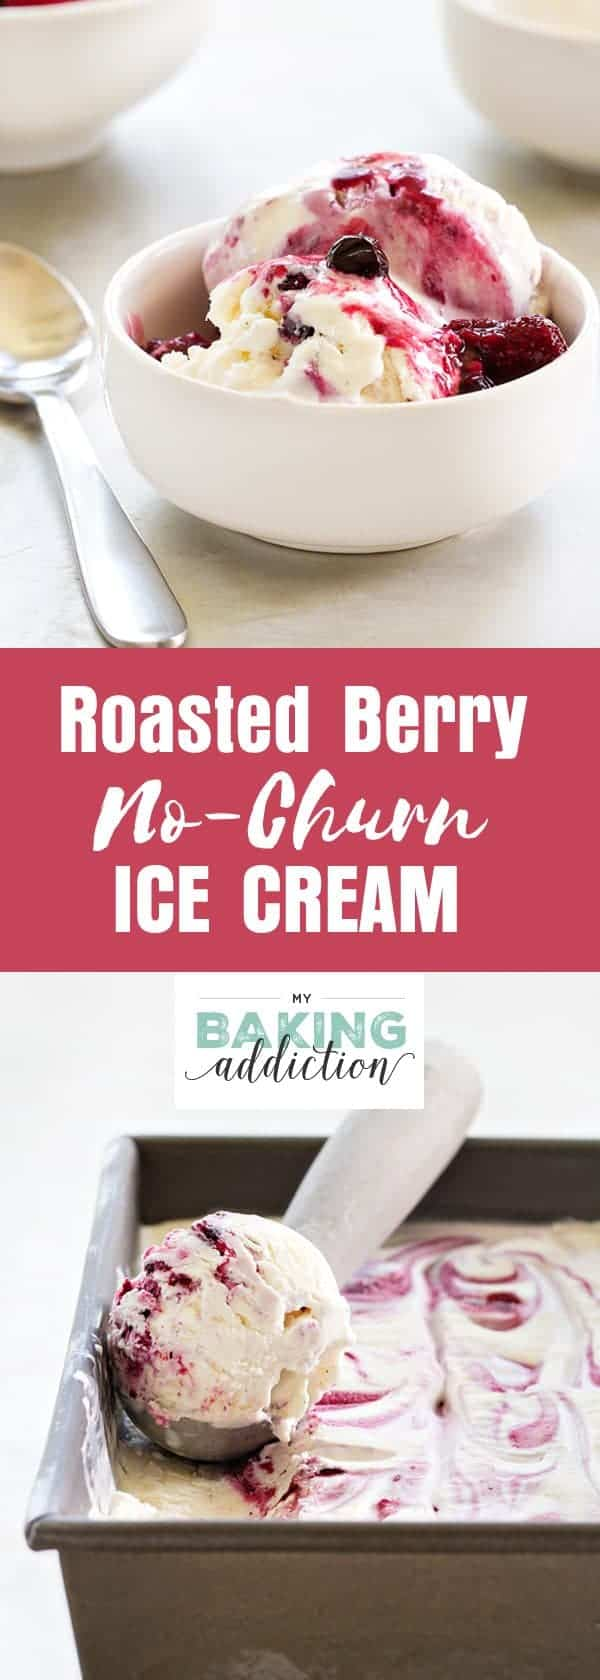 No-Churn Roasted Berry Ice Cream is full of sweet spring berry flavor. The little flecks of vanilla make it extra special. So perfect for summer!